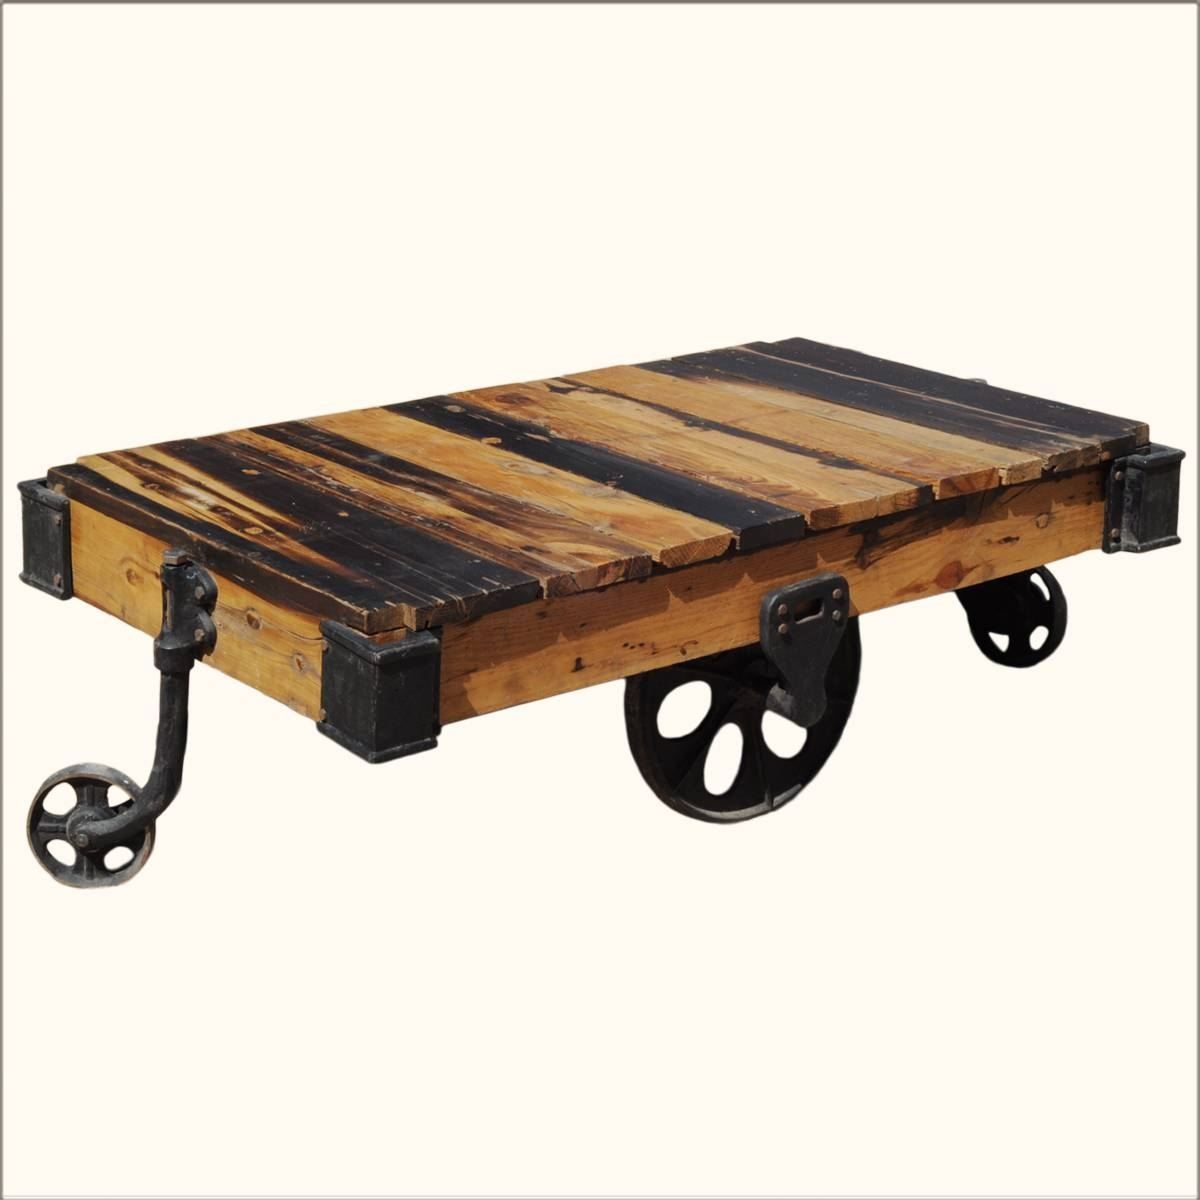 Diy Rustic Wood Coffee Table On Wheels Picture - Decofurnish throughout Rustic Coffee Table With Wheels (Image 7 of 30)